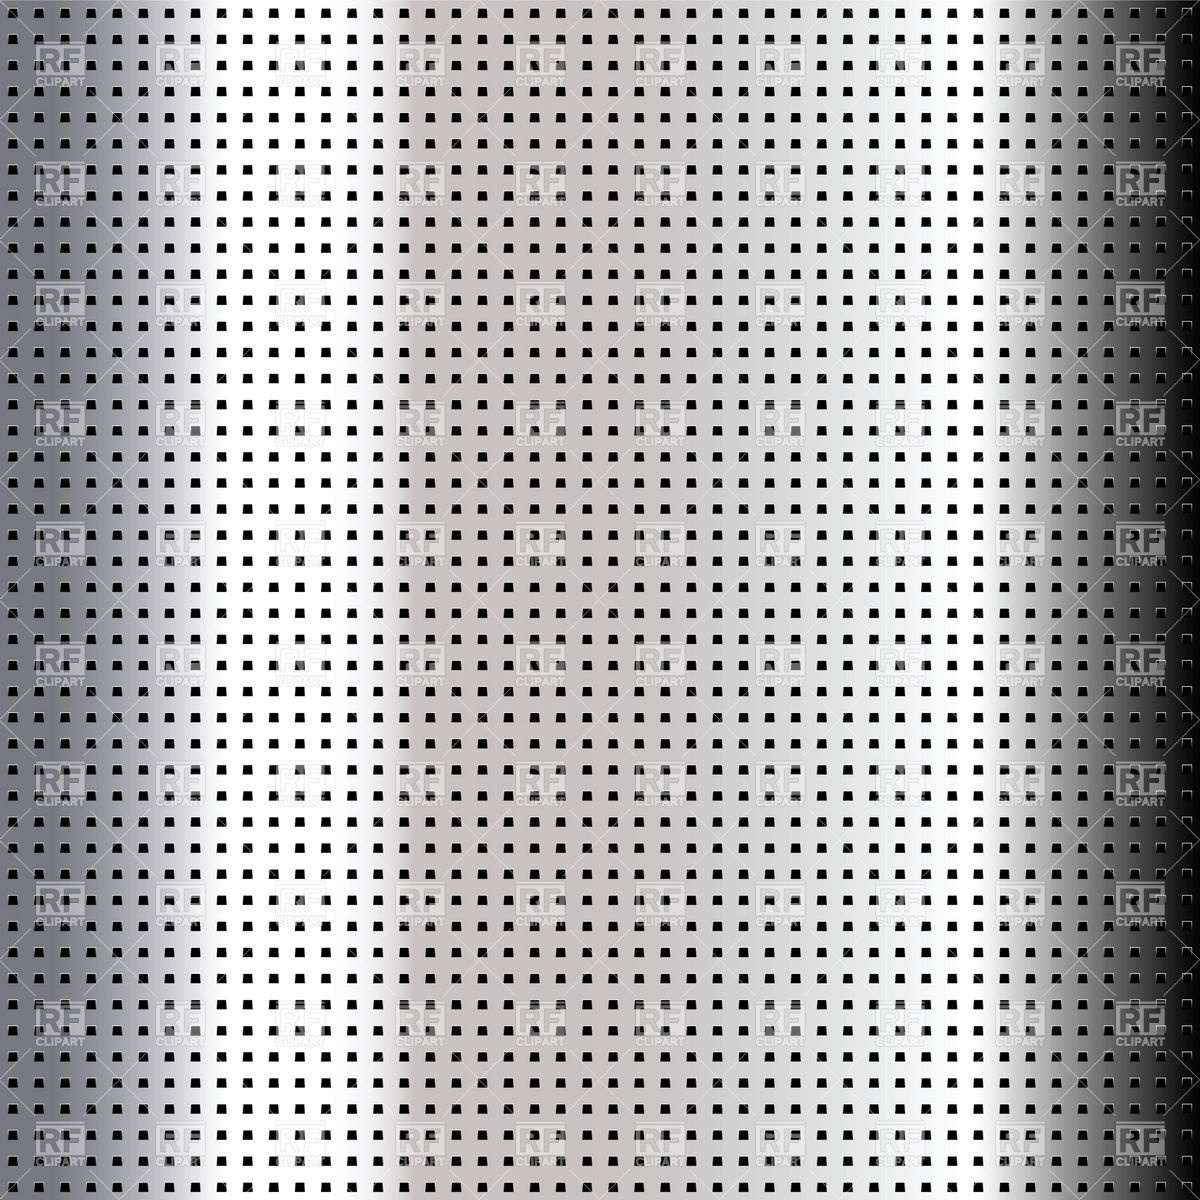 Metallic perforated steel sheet with square holes Vector Image.